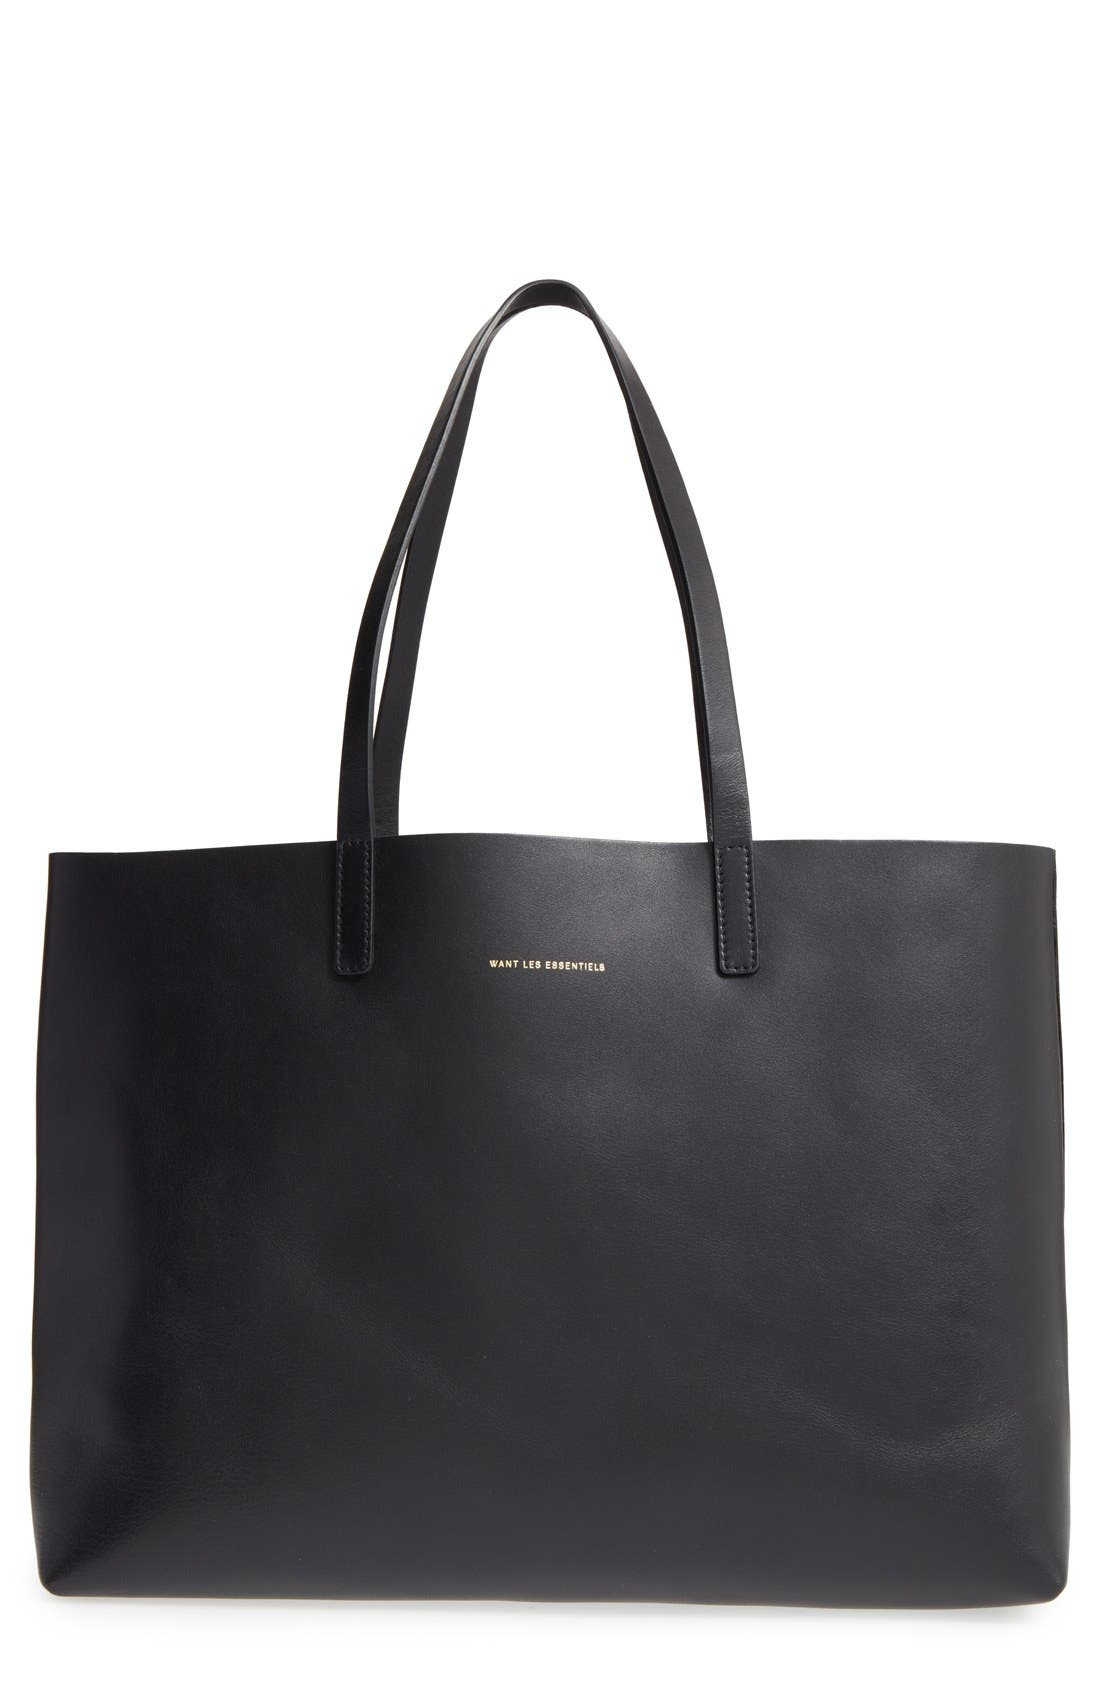 Main Image - WANT LES ESSENTIELS 'Strauss' Reversible Leather Tote